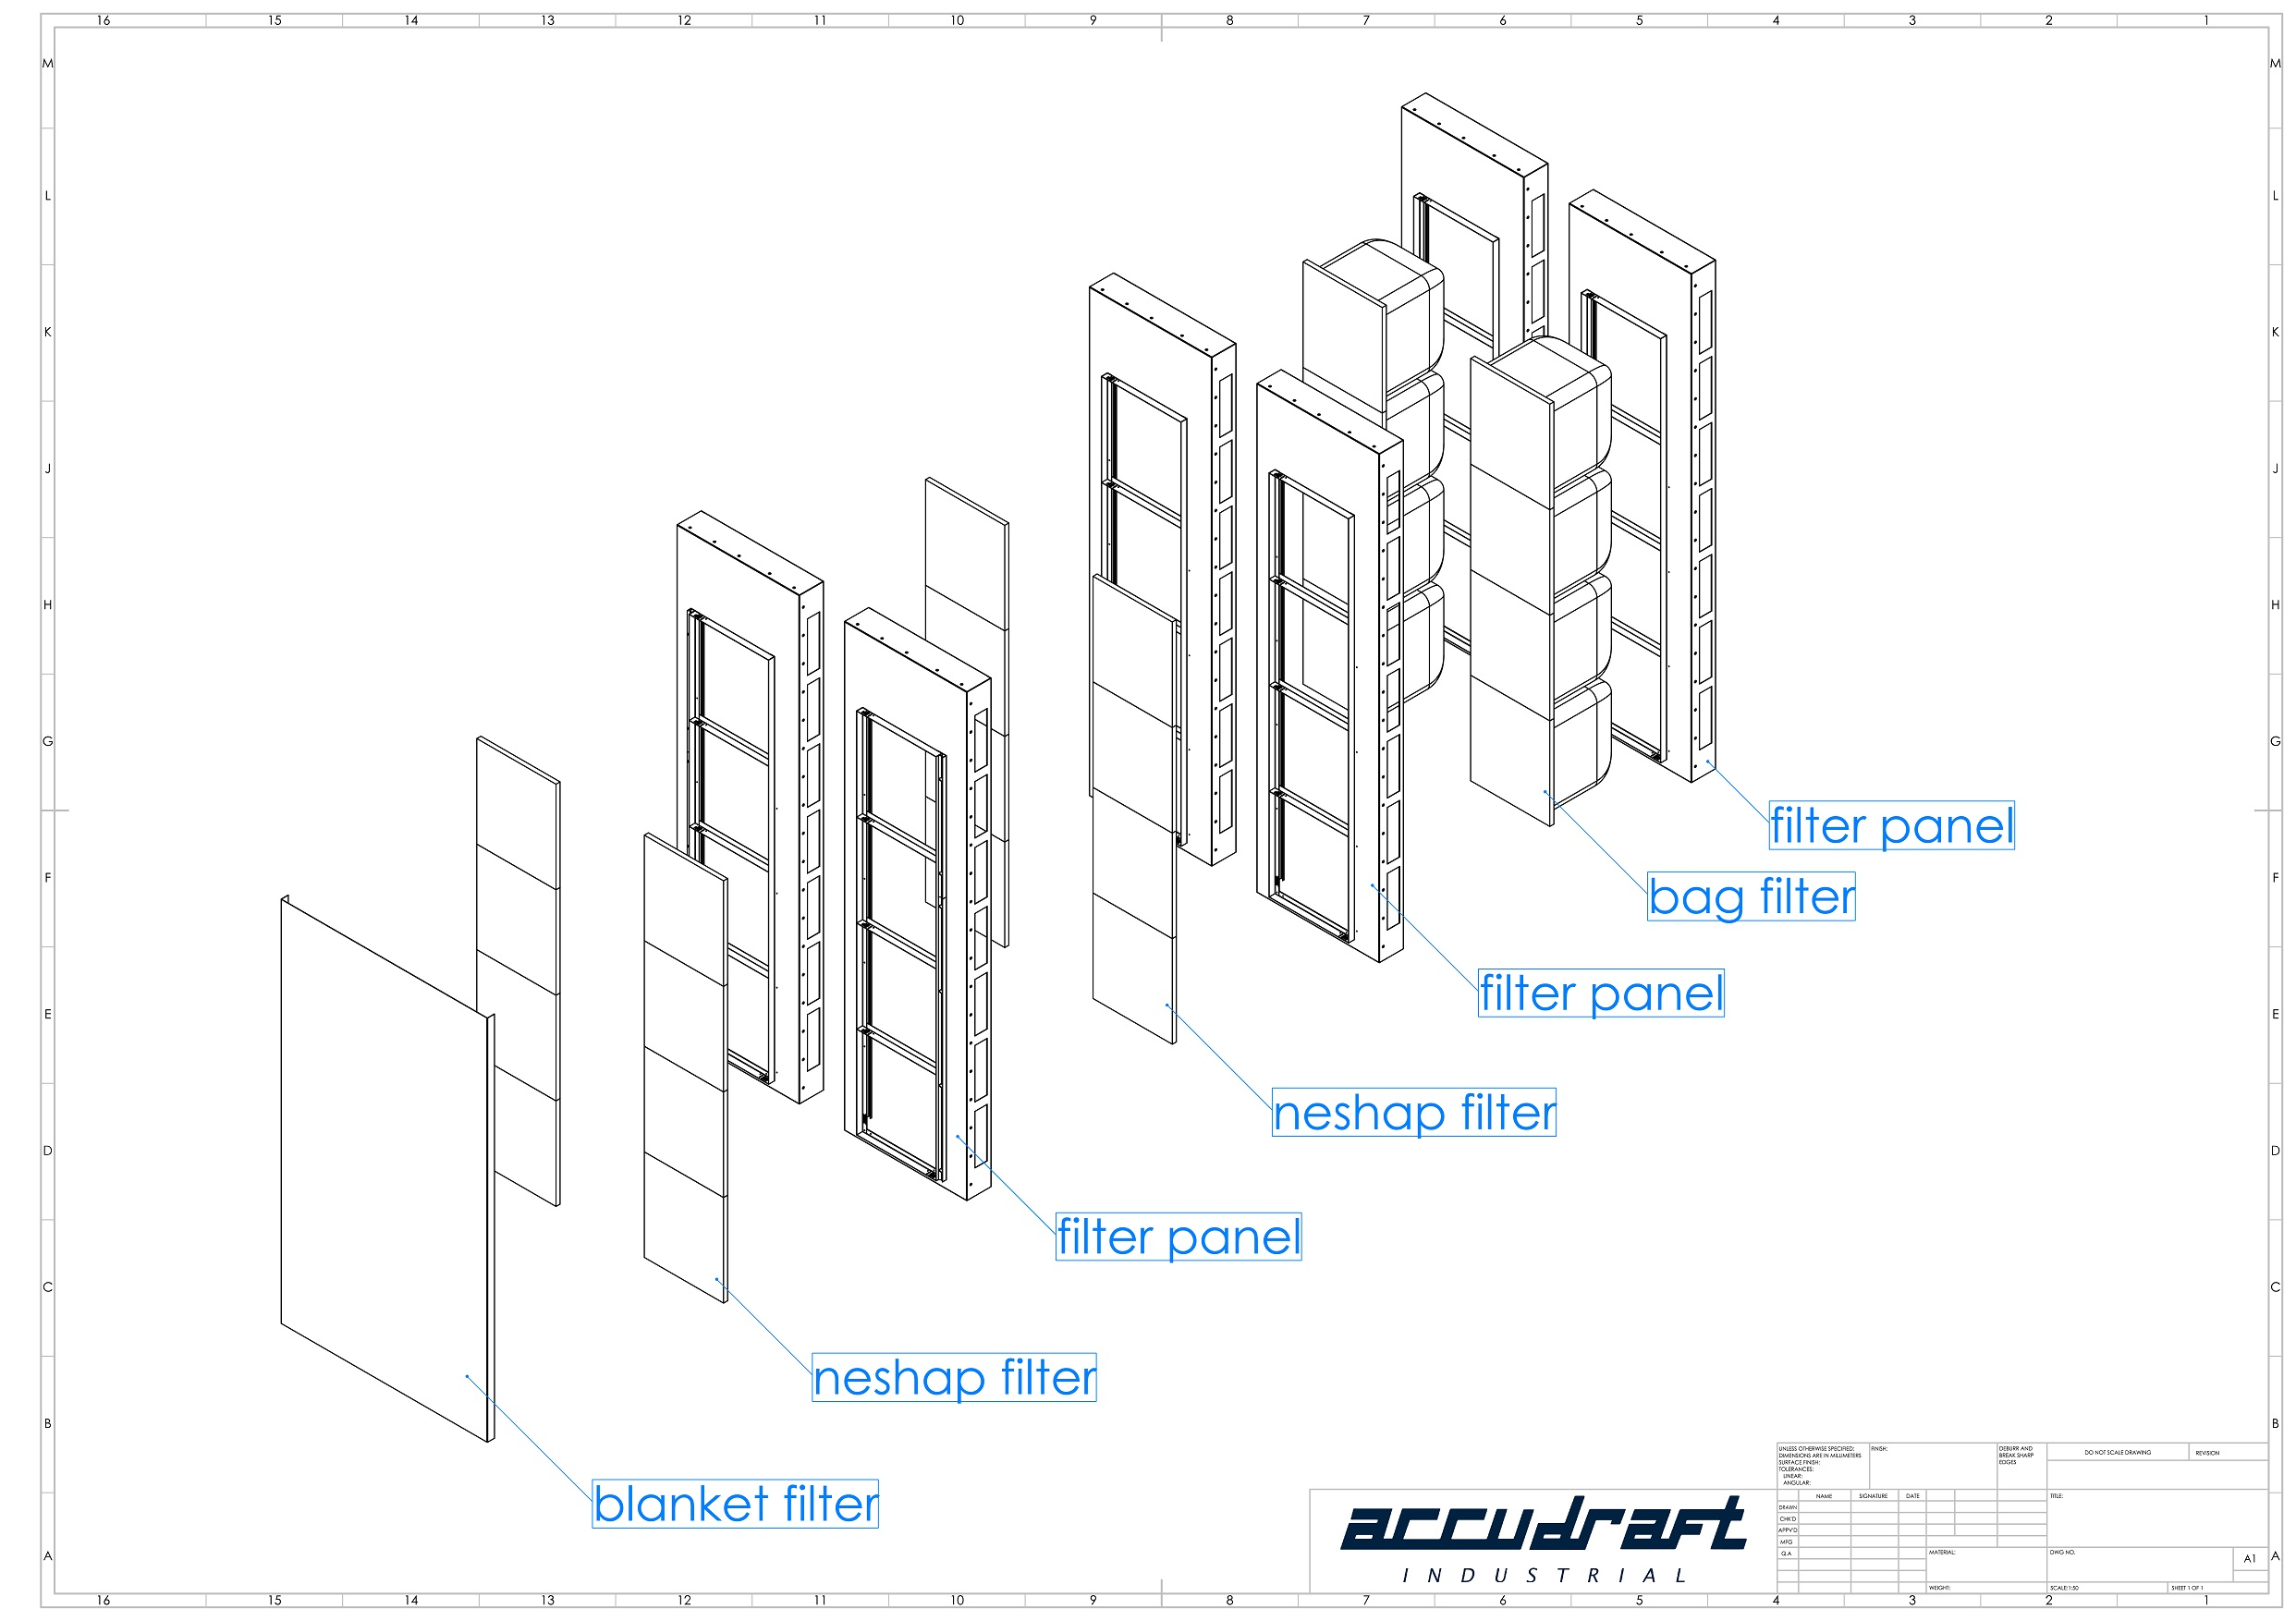 Marine paint booth filter layer diagram